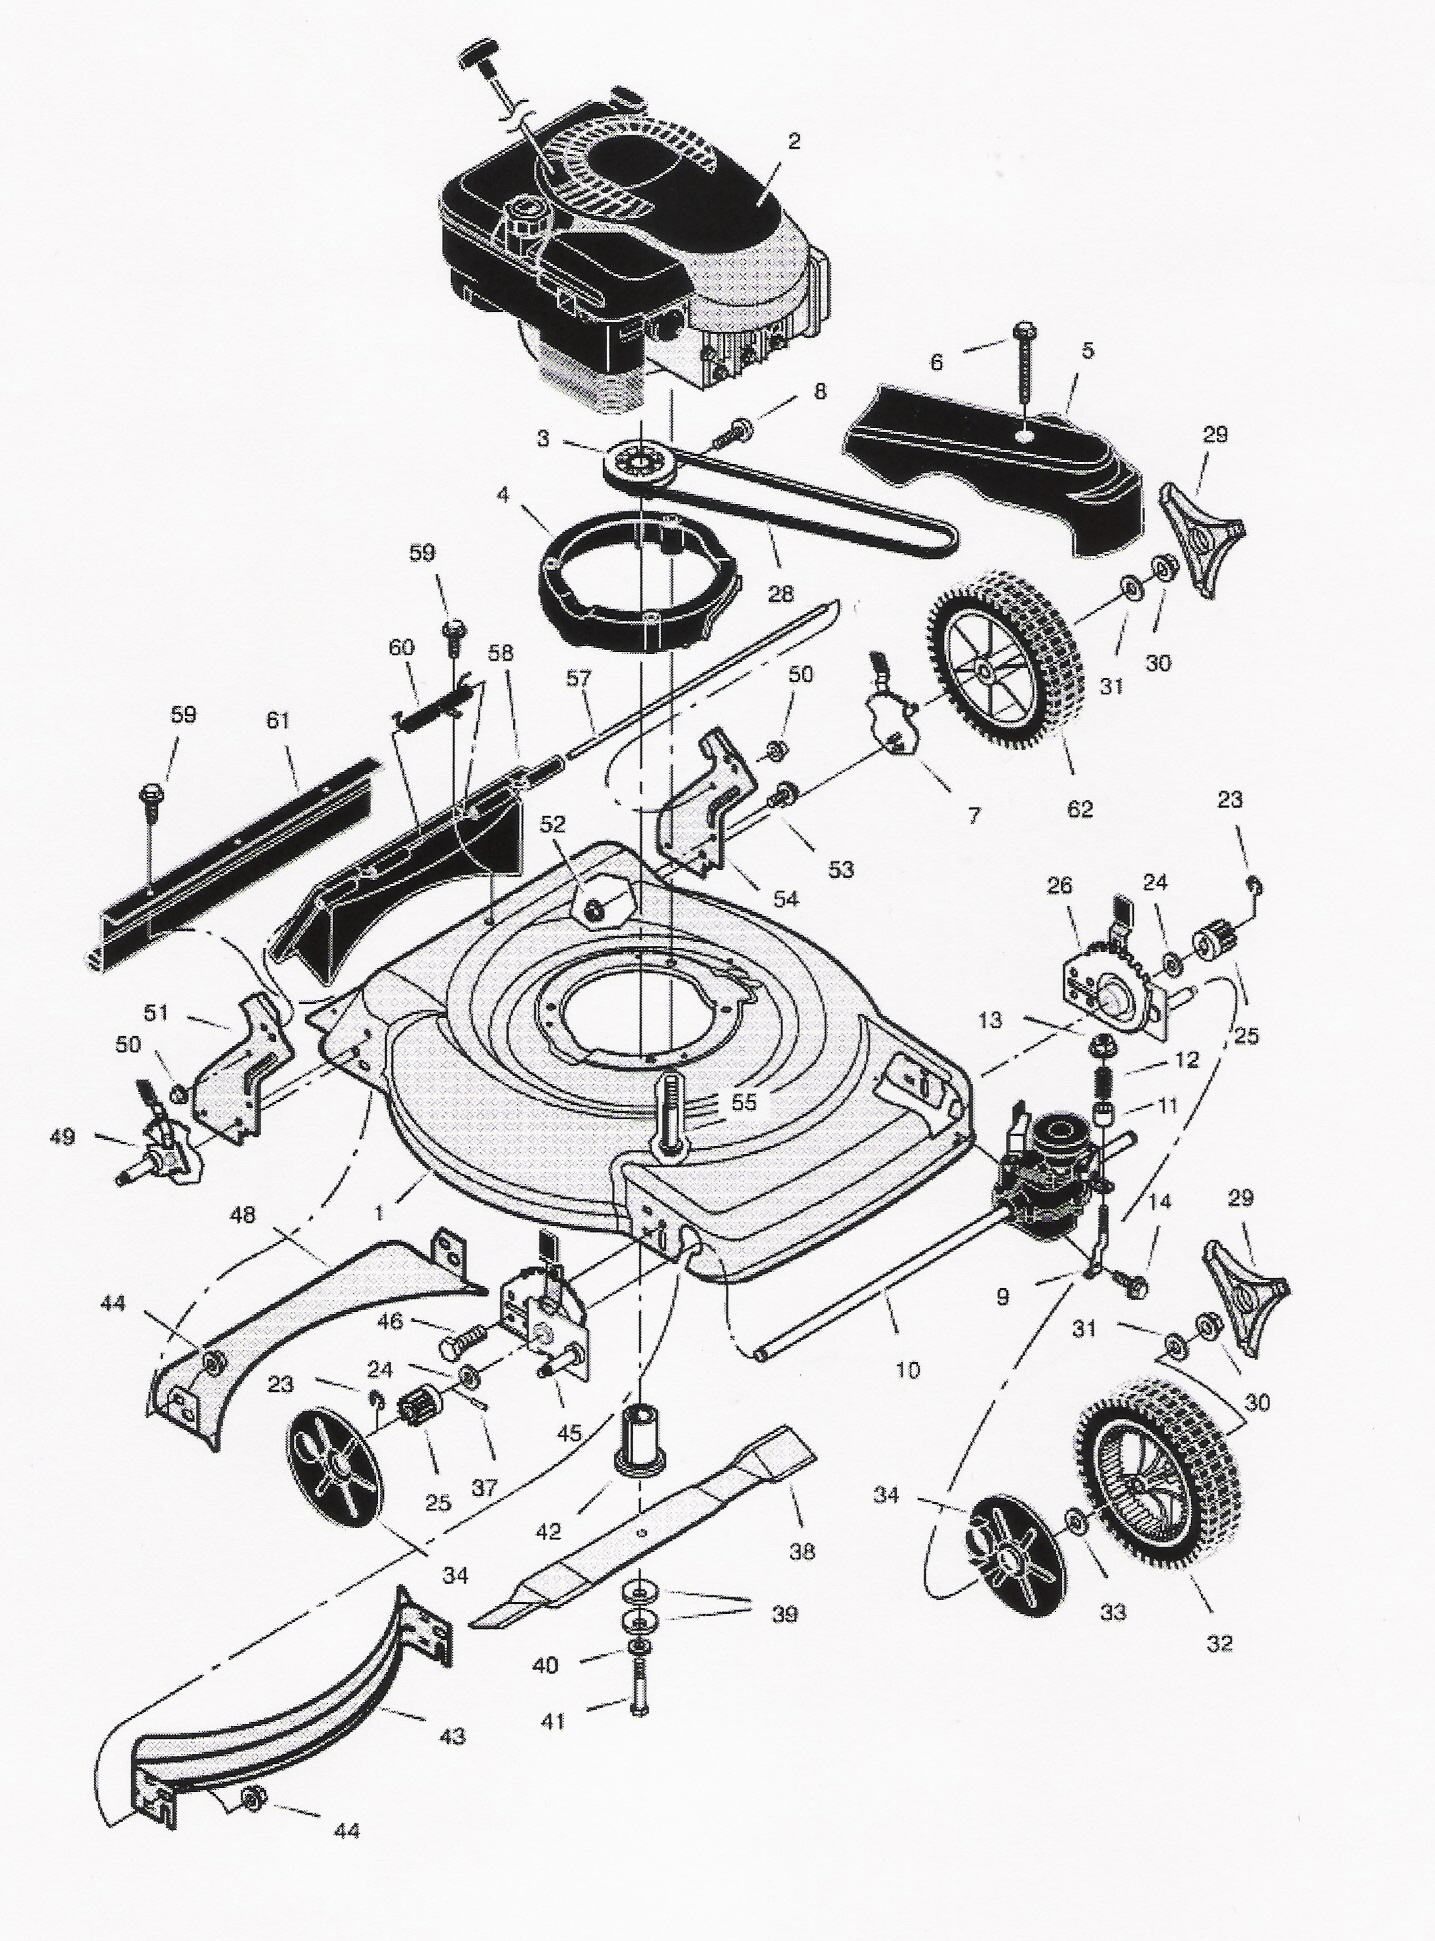 Wiring Diagram For Scotts Riding Lawn Mower Schematics White Tractor Battery A Poulan Pro